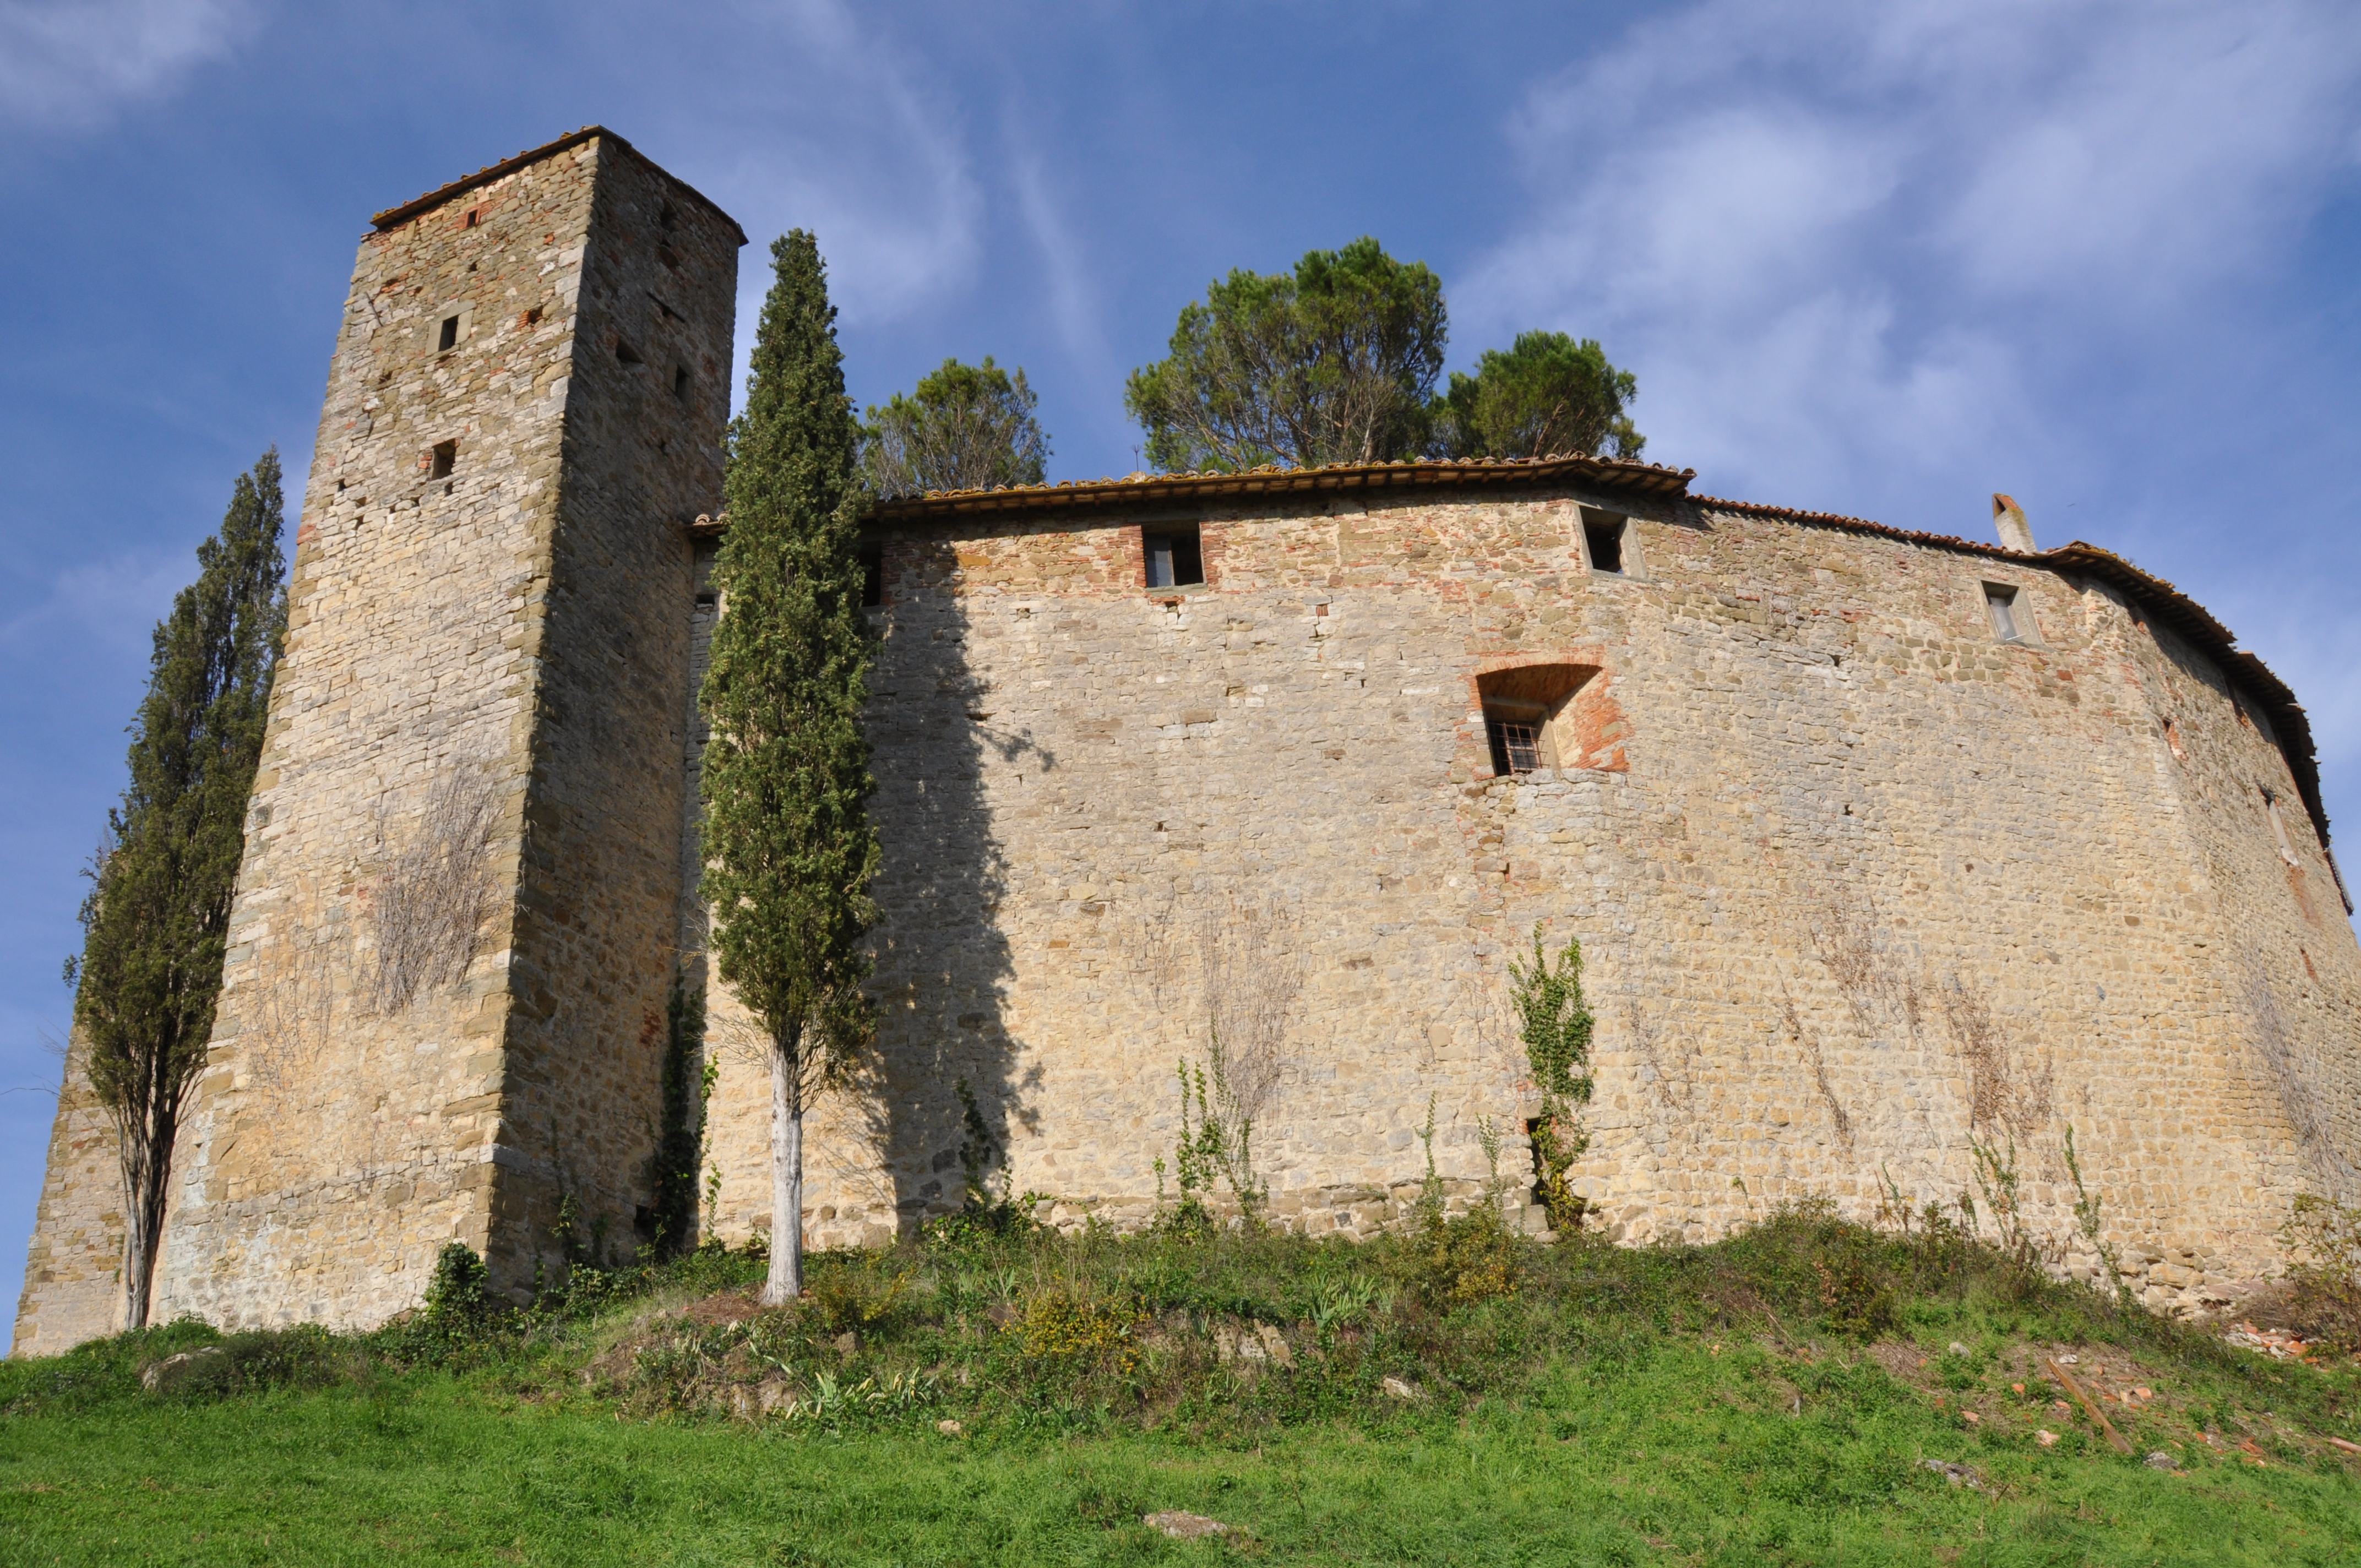 The Castle of Reschio